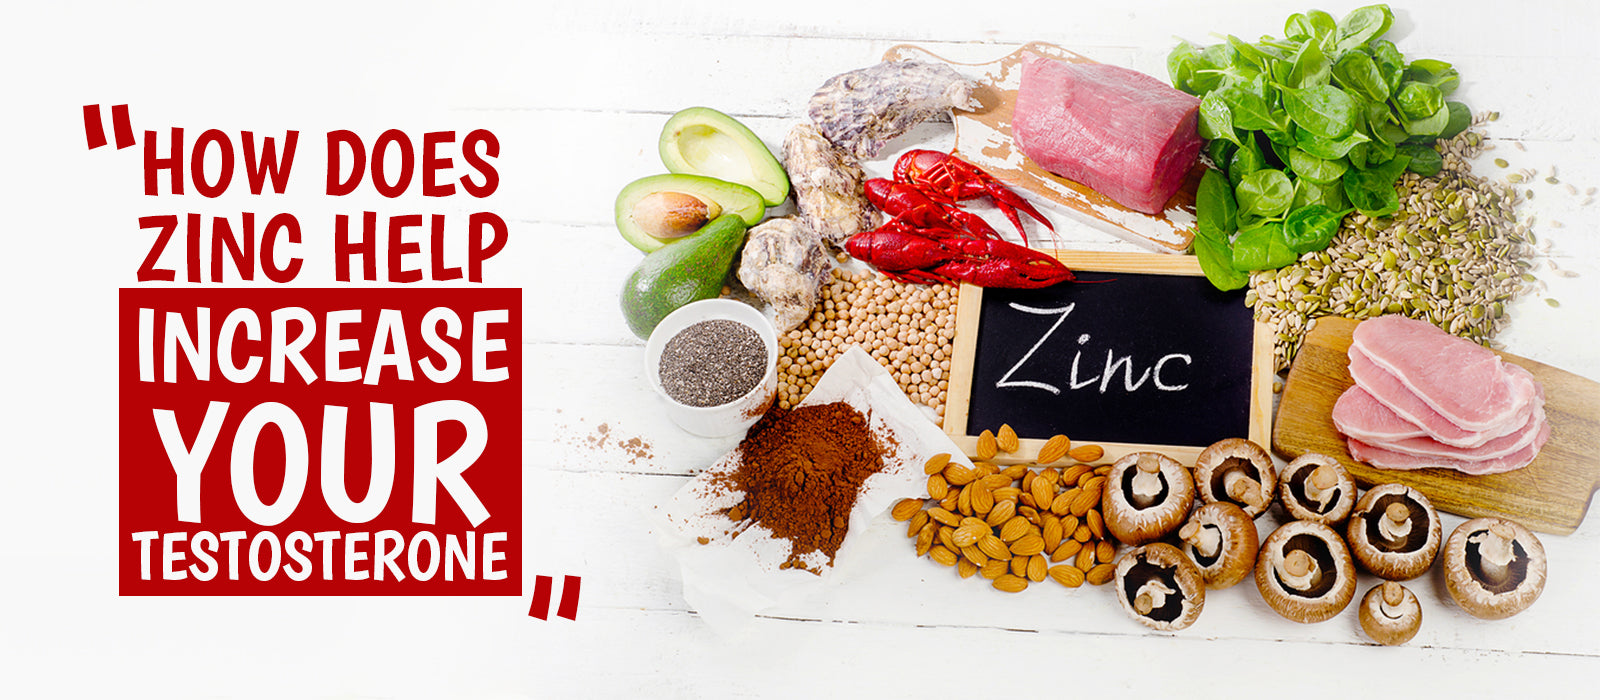 How Does Zinc Help Increase Your Testosterone